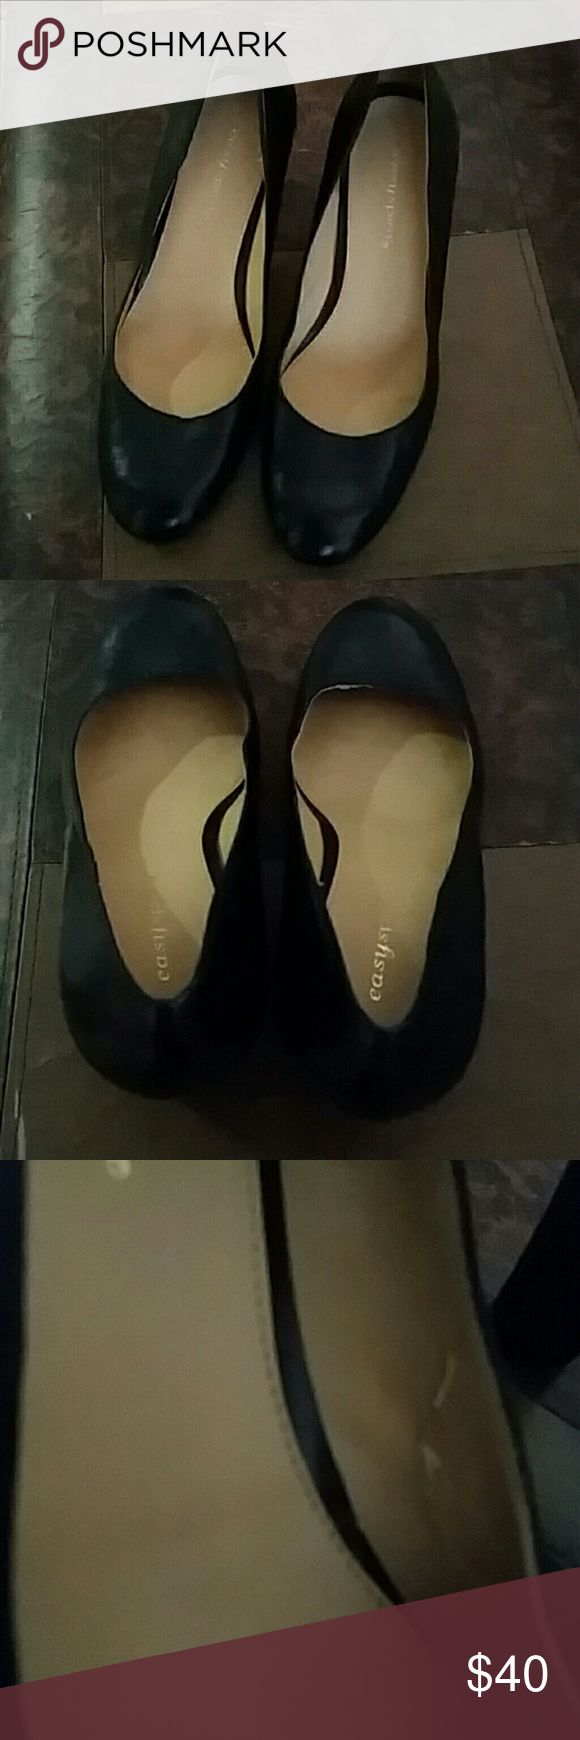 Easy Spirit Black Leather Pumps Gorgeous Easy Spirit Black Leather Pumps. These butter soft pumps leather pumps are in excellent condition and have never been worn. Slight peeling on inside due to storage (see photos). Easy Spirit Shoes Heels